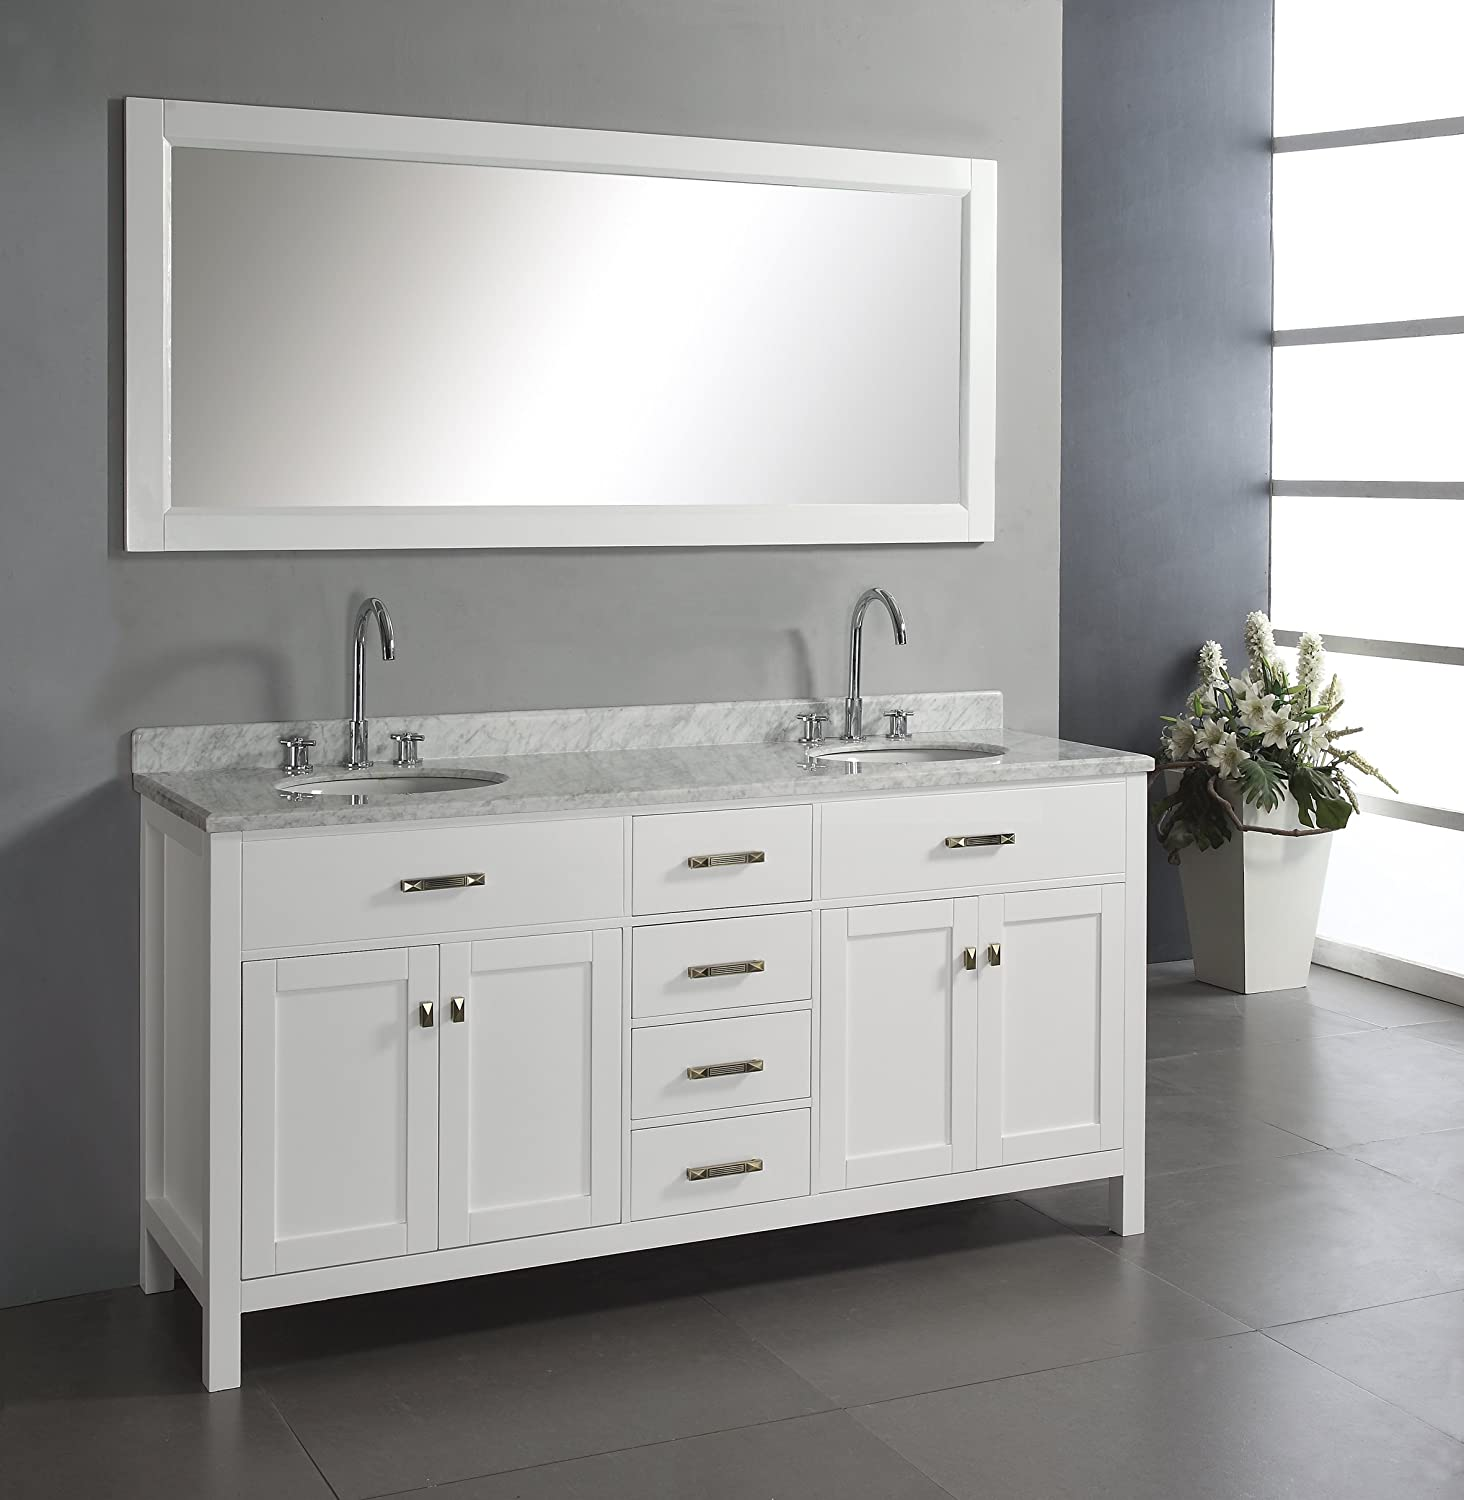 Virtu USA MD 2072 WMRO WH Caroline 72 Inch Double Sink Bathroom Vanity With  Italian White Carrera Marble Countertop And Mirror, White Finish      Amazon.com